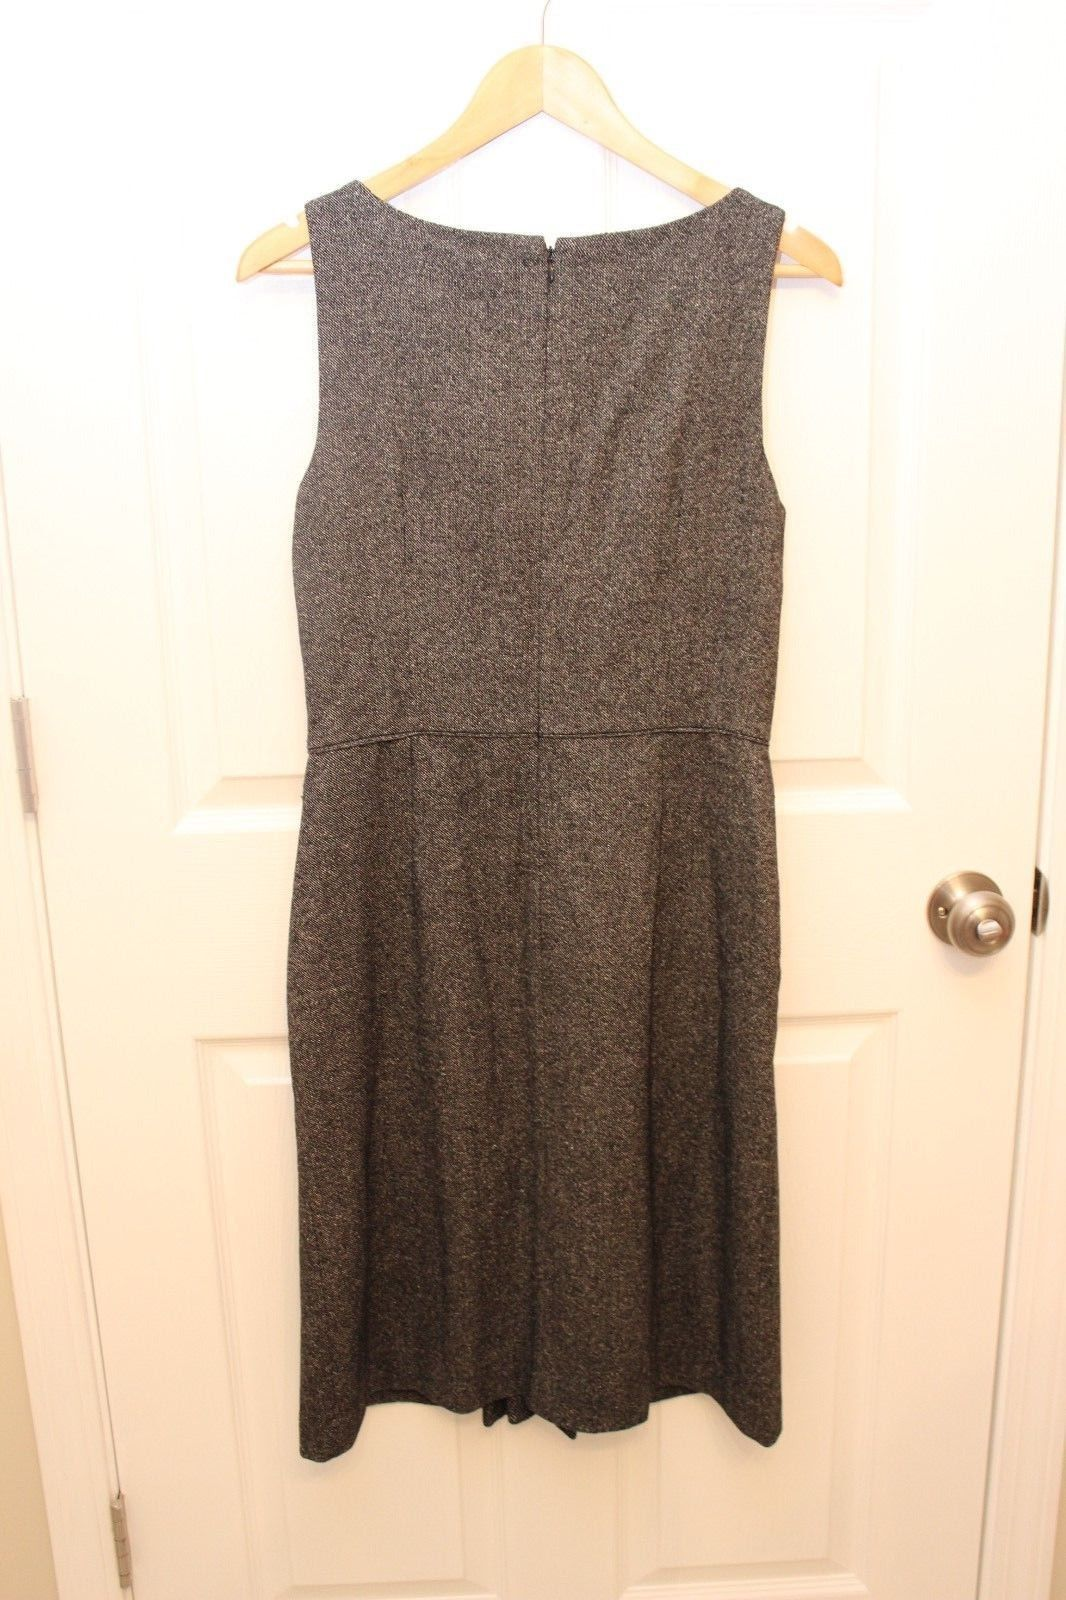 Ann Taylor LOFT Dress 6 Womens Black Fleck Wool Blend Tweed Sheath Pleat Detail